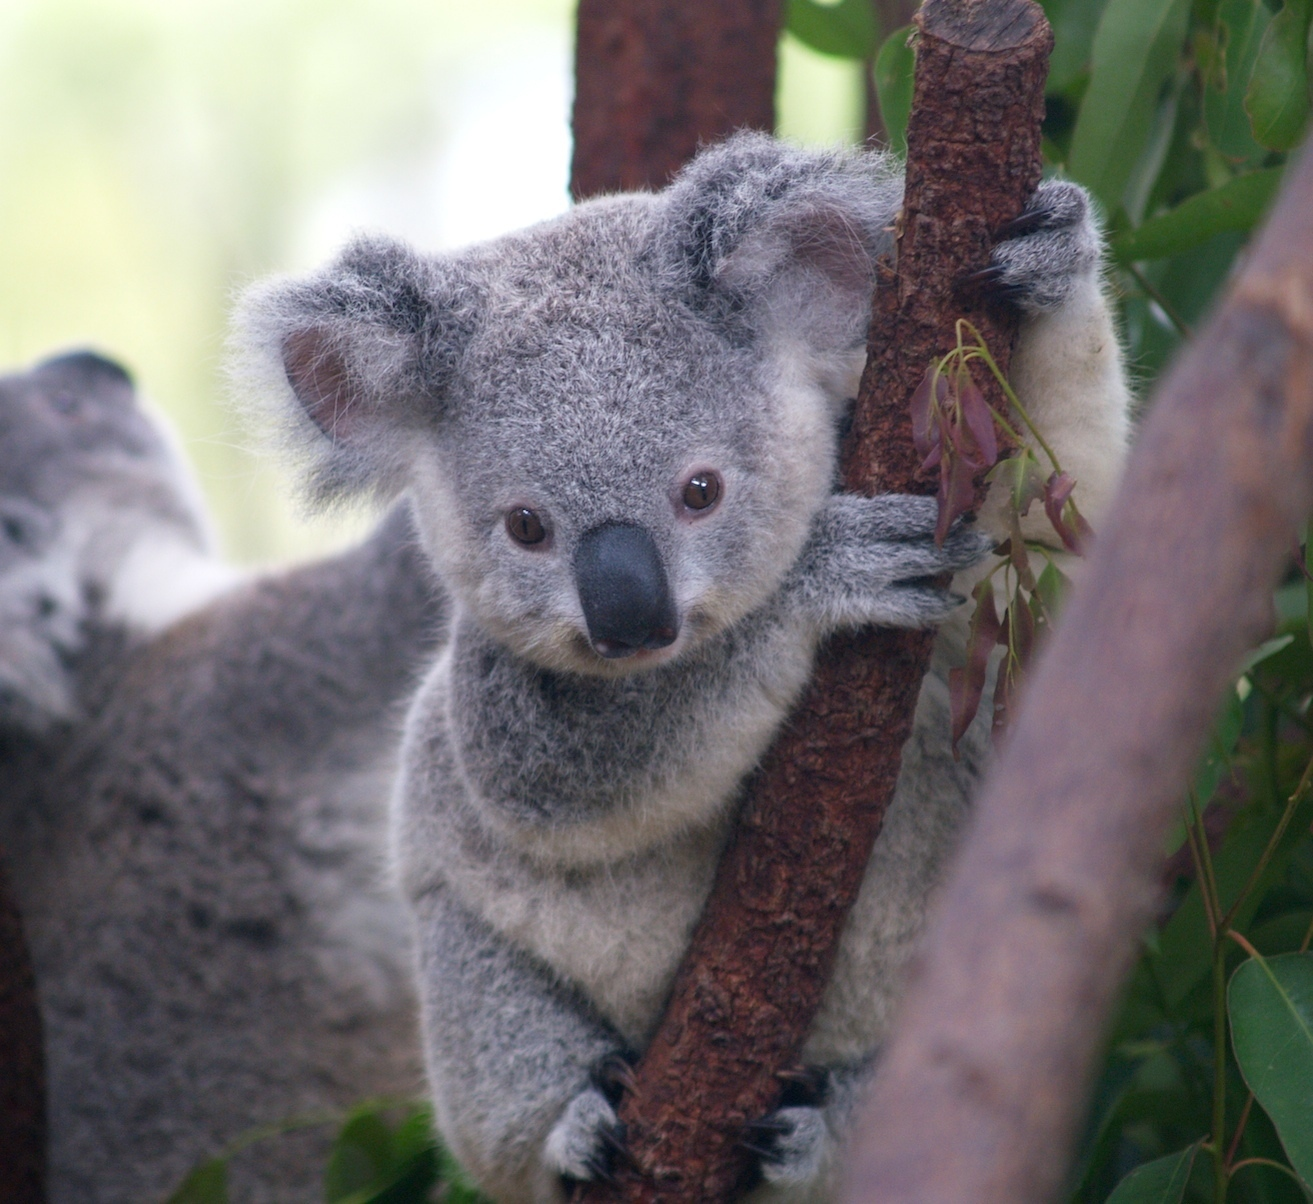 koala bears Koala food koalas eat eucalyptus leaves koalas smell the leaves to make sure they are not too poisonous koalas have to eat 1 pound of leaves per day to stay healthy.